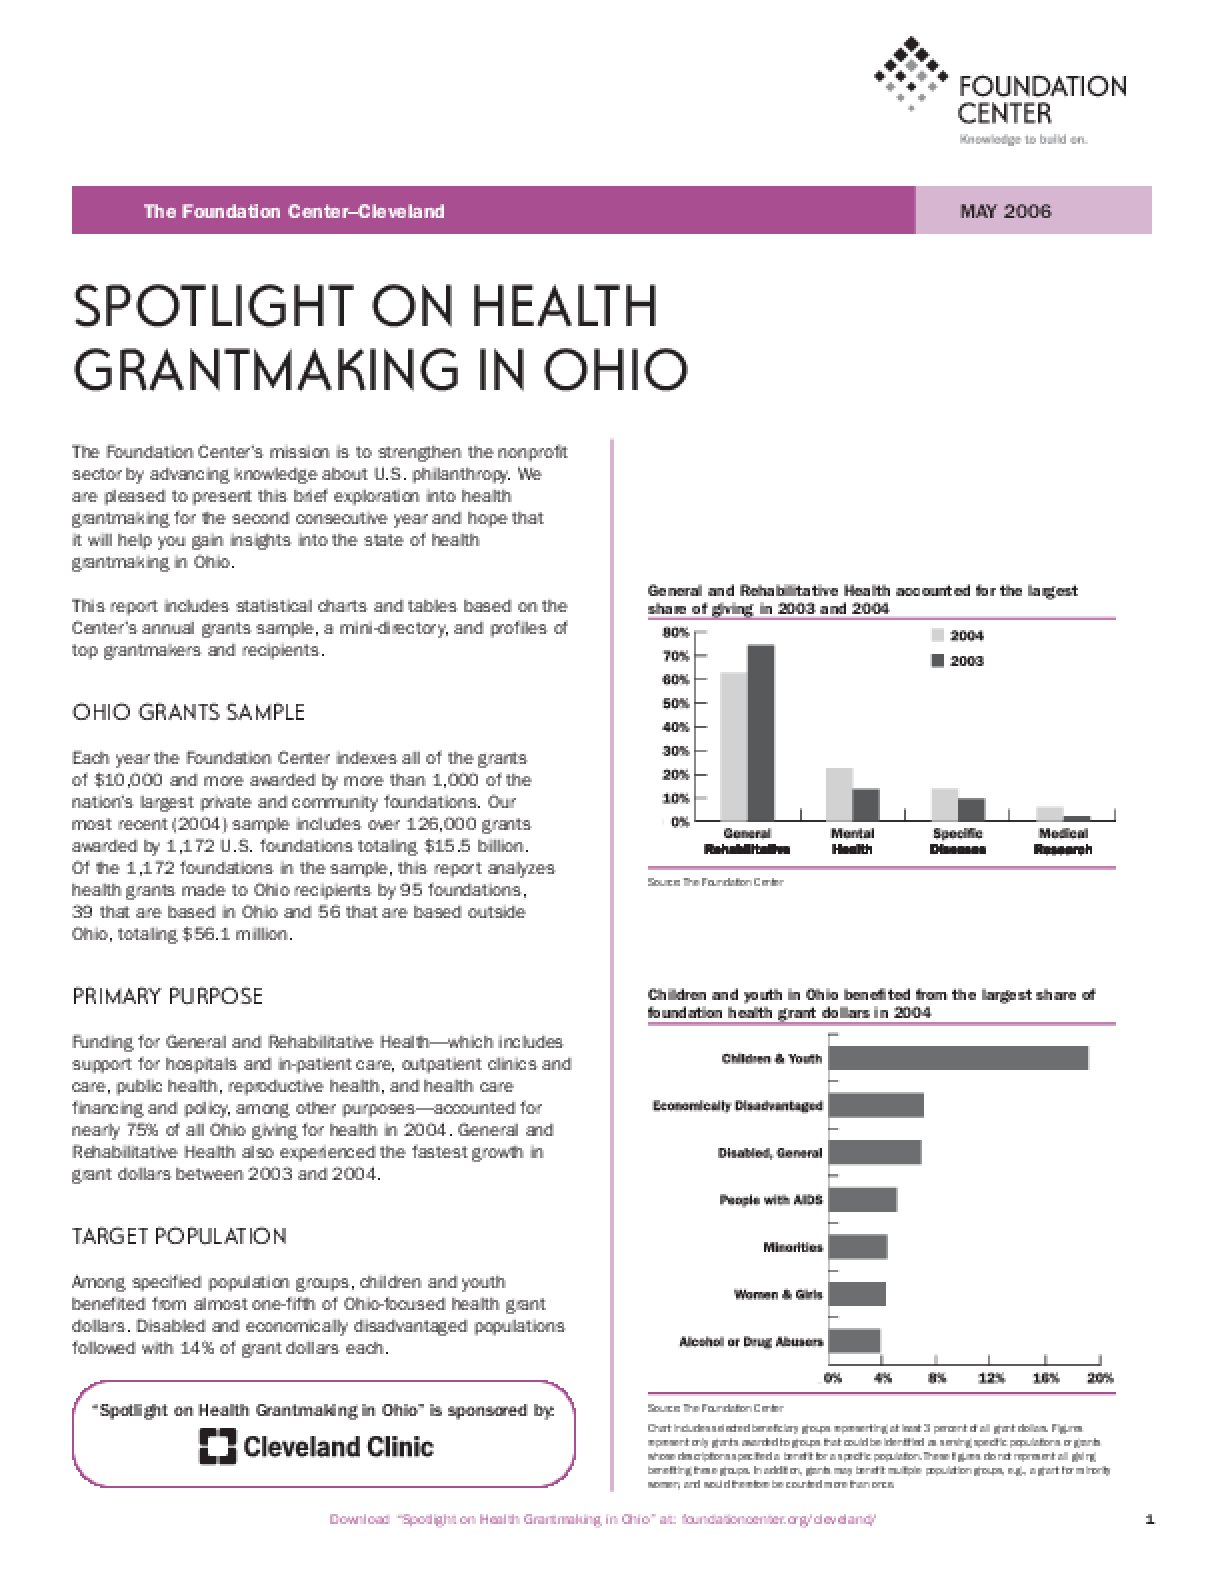 Spotlight on Health Grantmaking in Ohio 2006